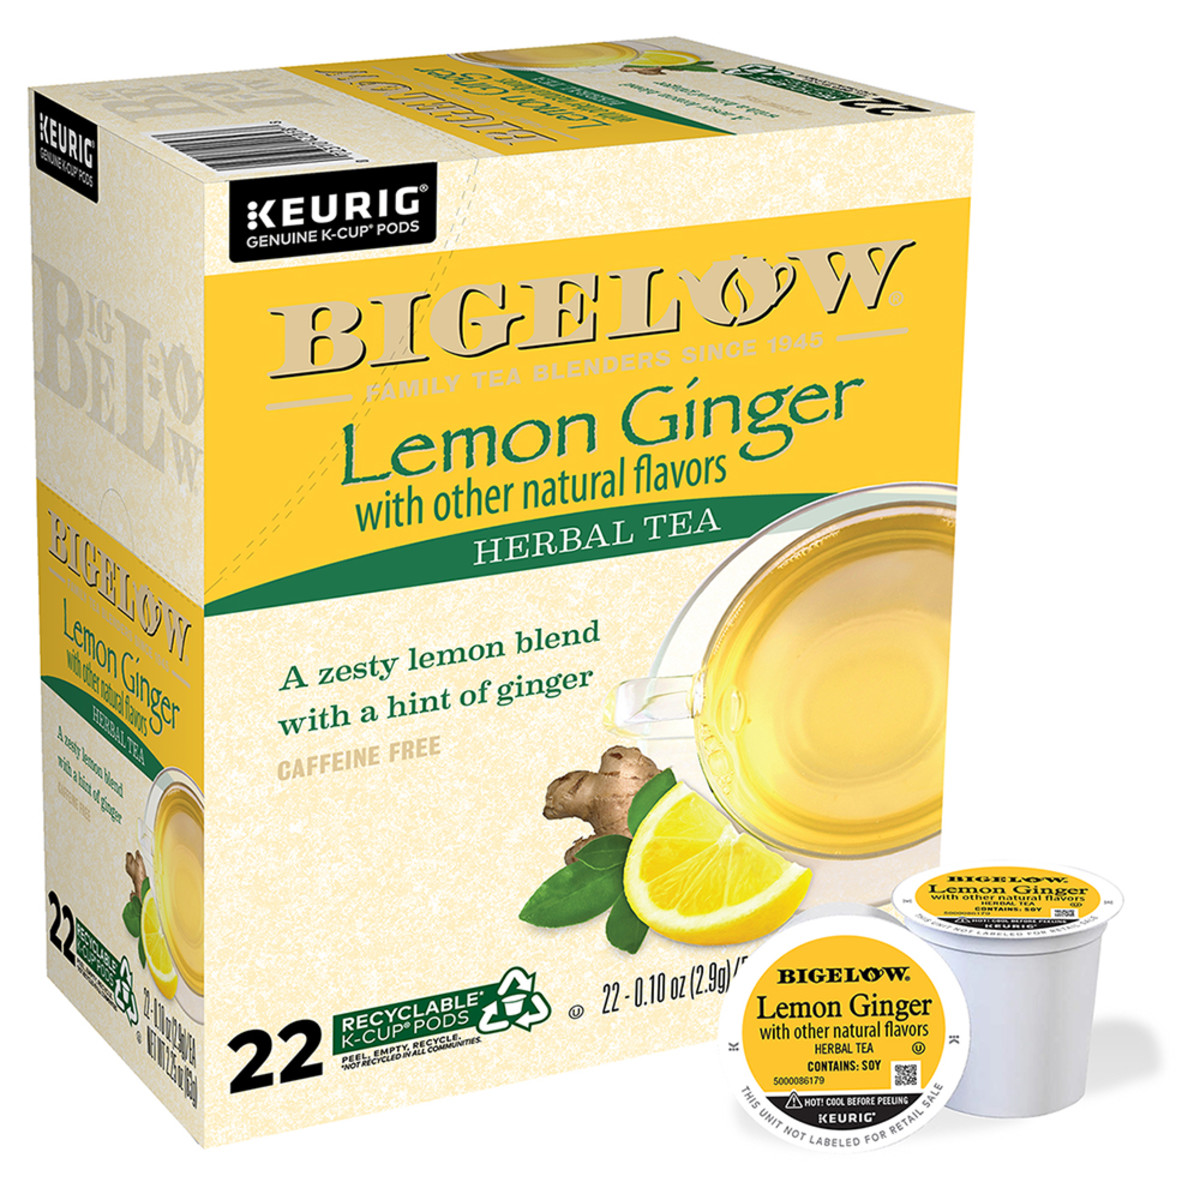 Lemon Ginger K-Cup® pods - Case of 4 boxes - total of 88 K-Cup® pods